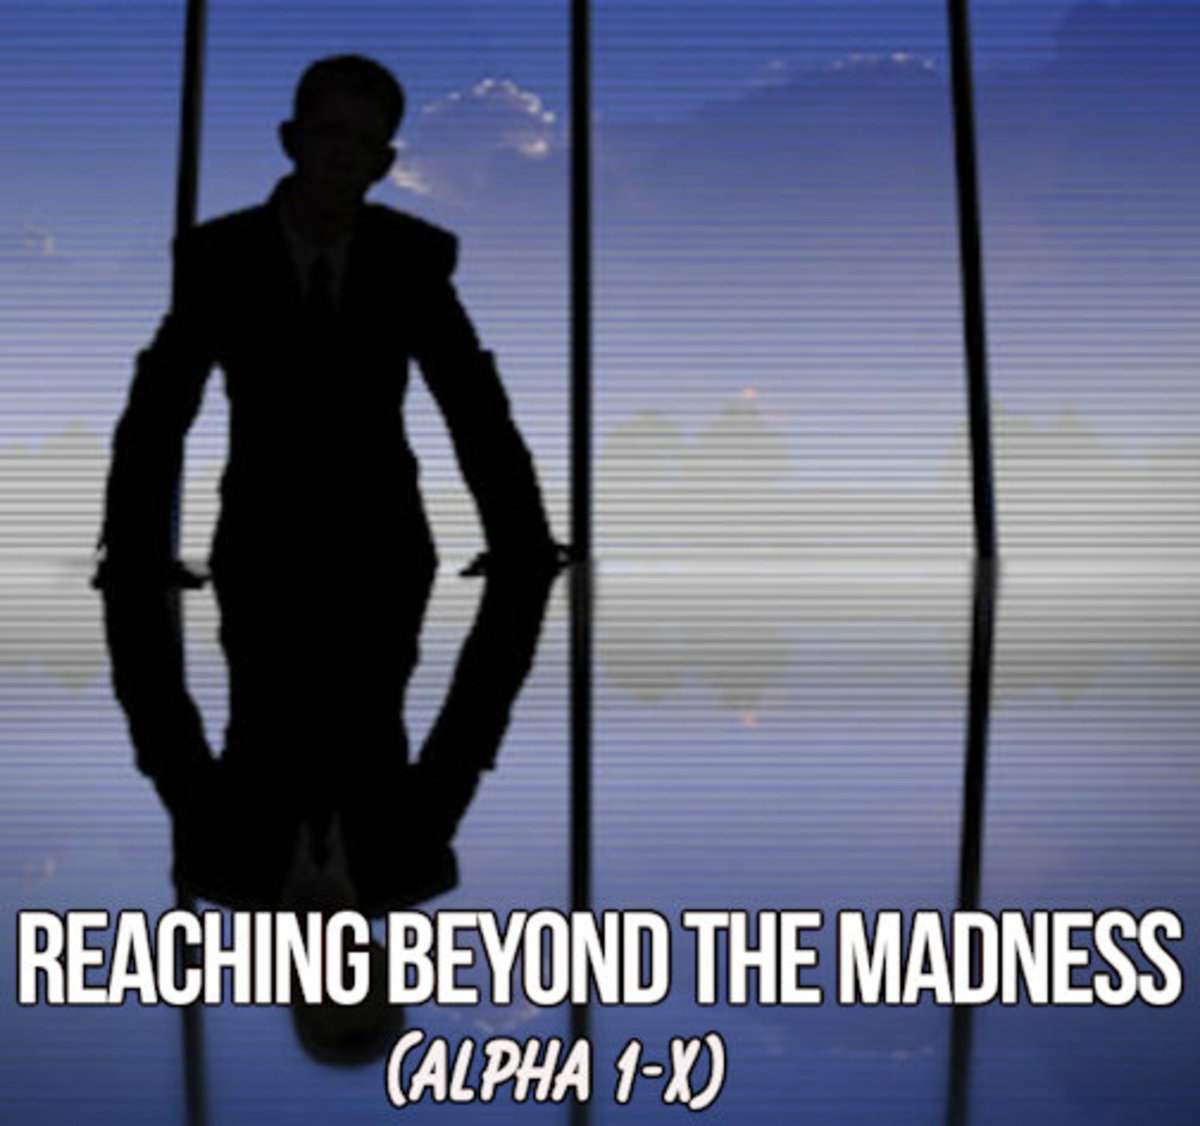 Reaching Beyond the Madness 4